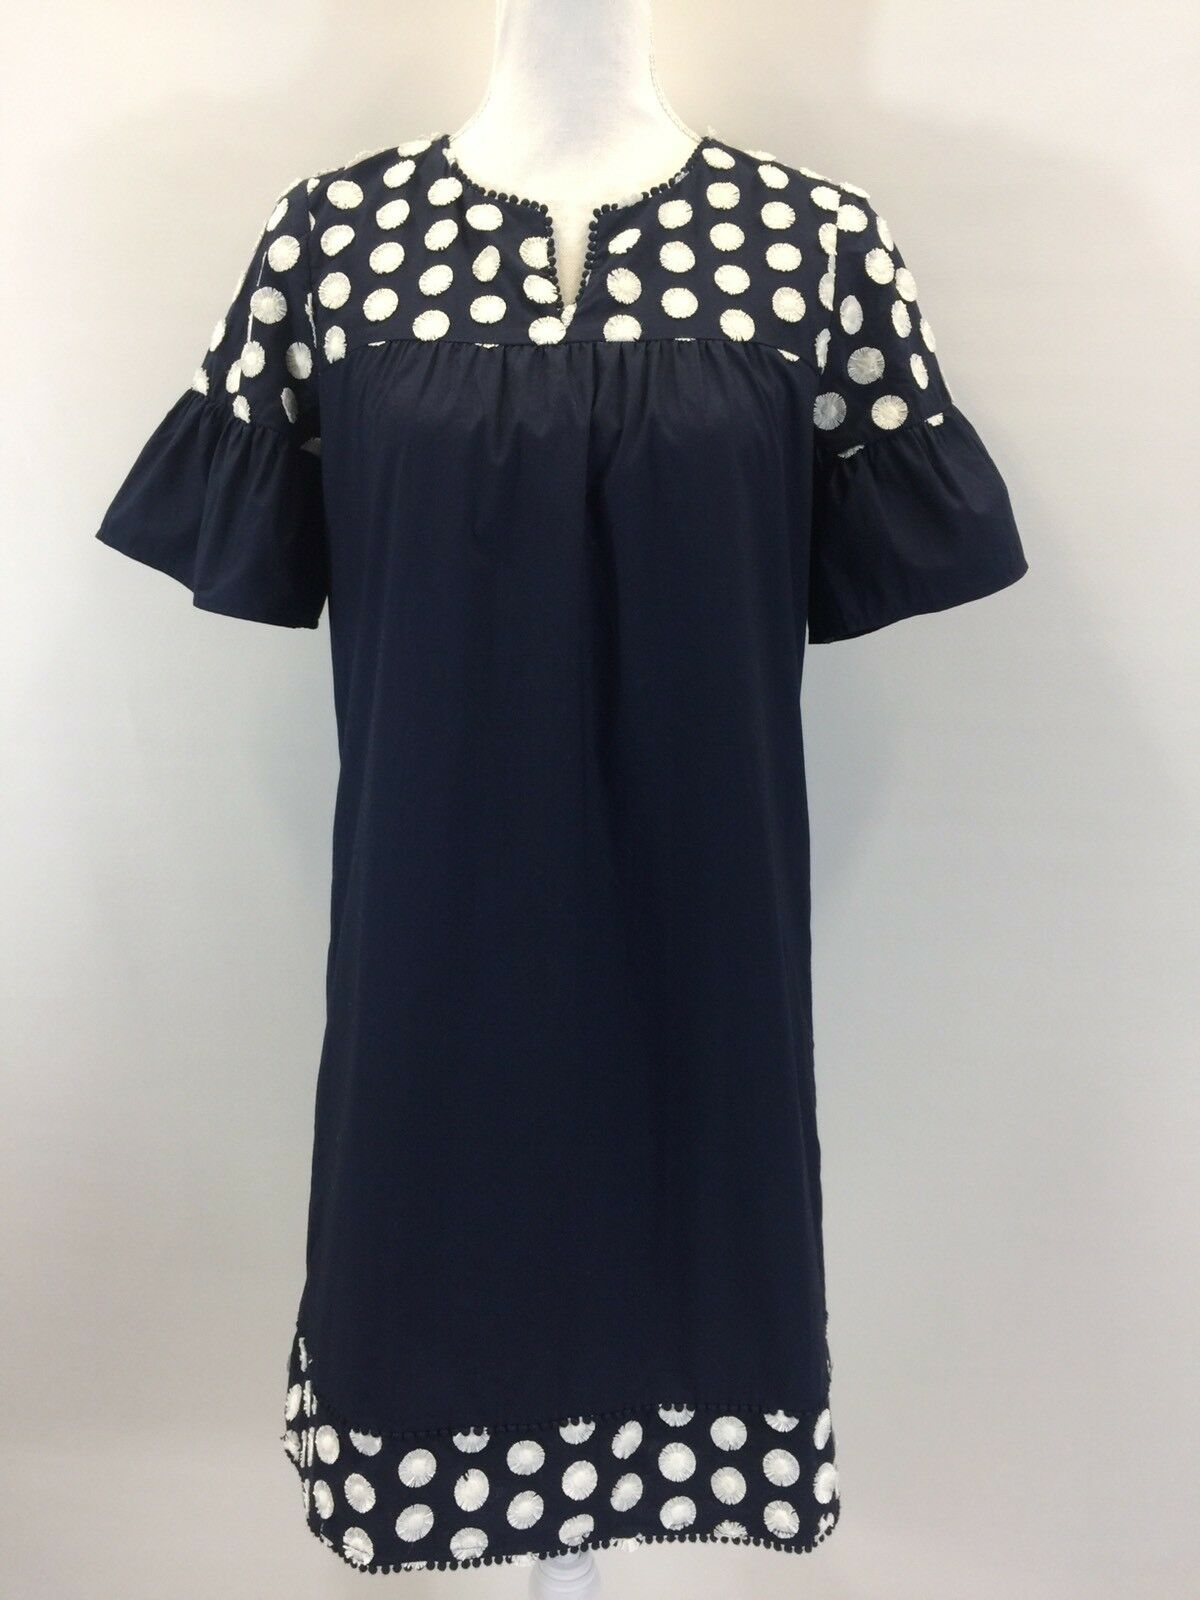 New JCrew Bell Sleeve Dress With Fringe Dot Navy Cream G3695 Size 4 SOLD OUT